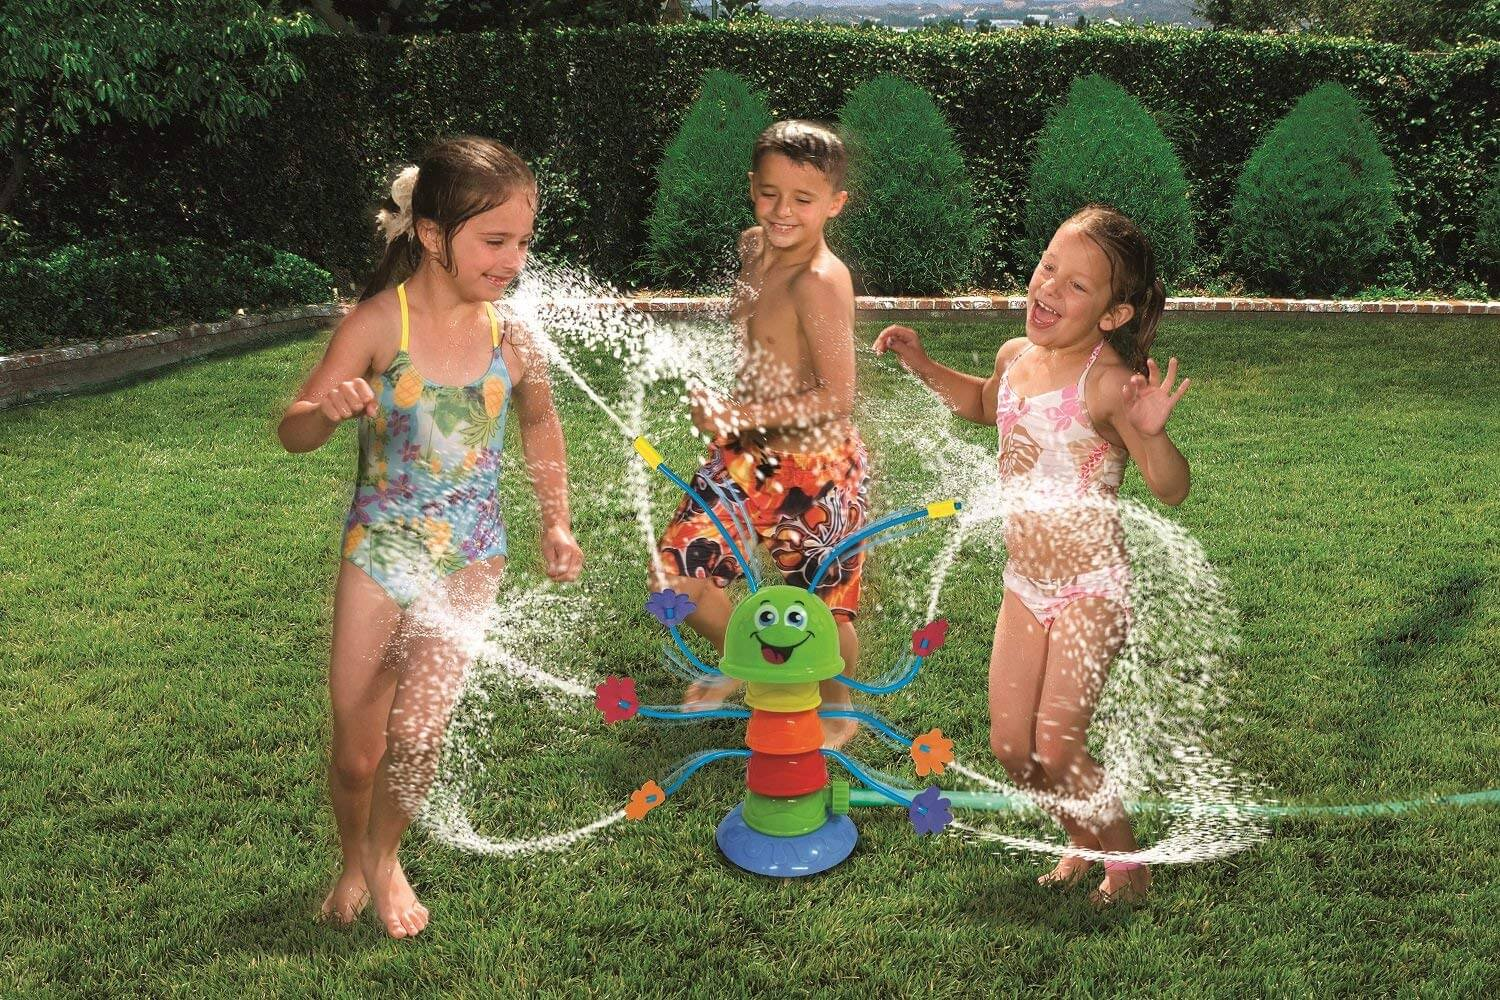 The sprinkler is an easy and fun form of entertainment